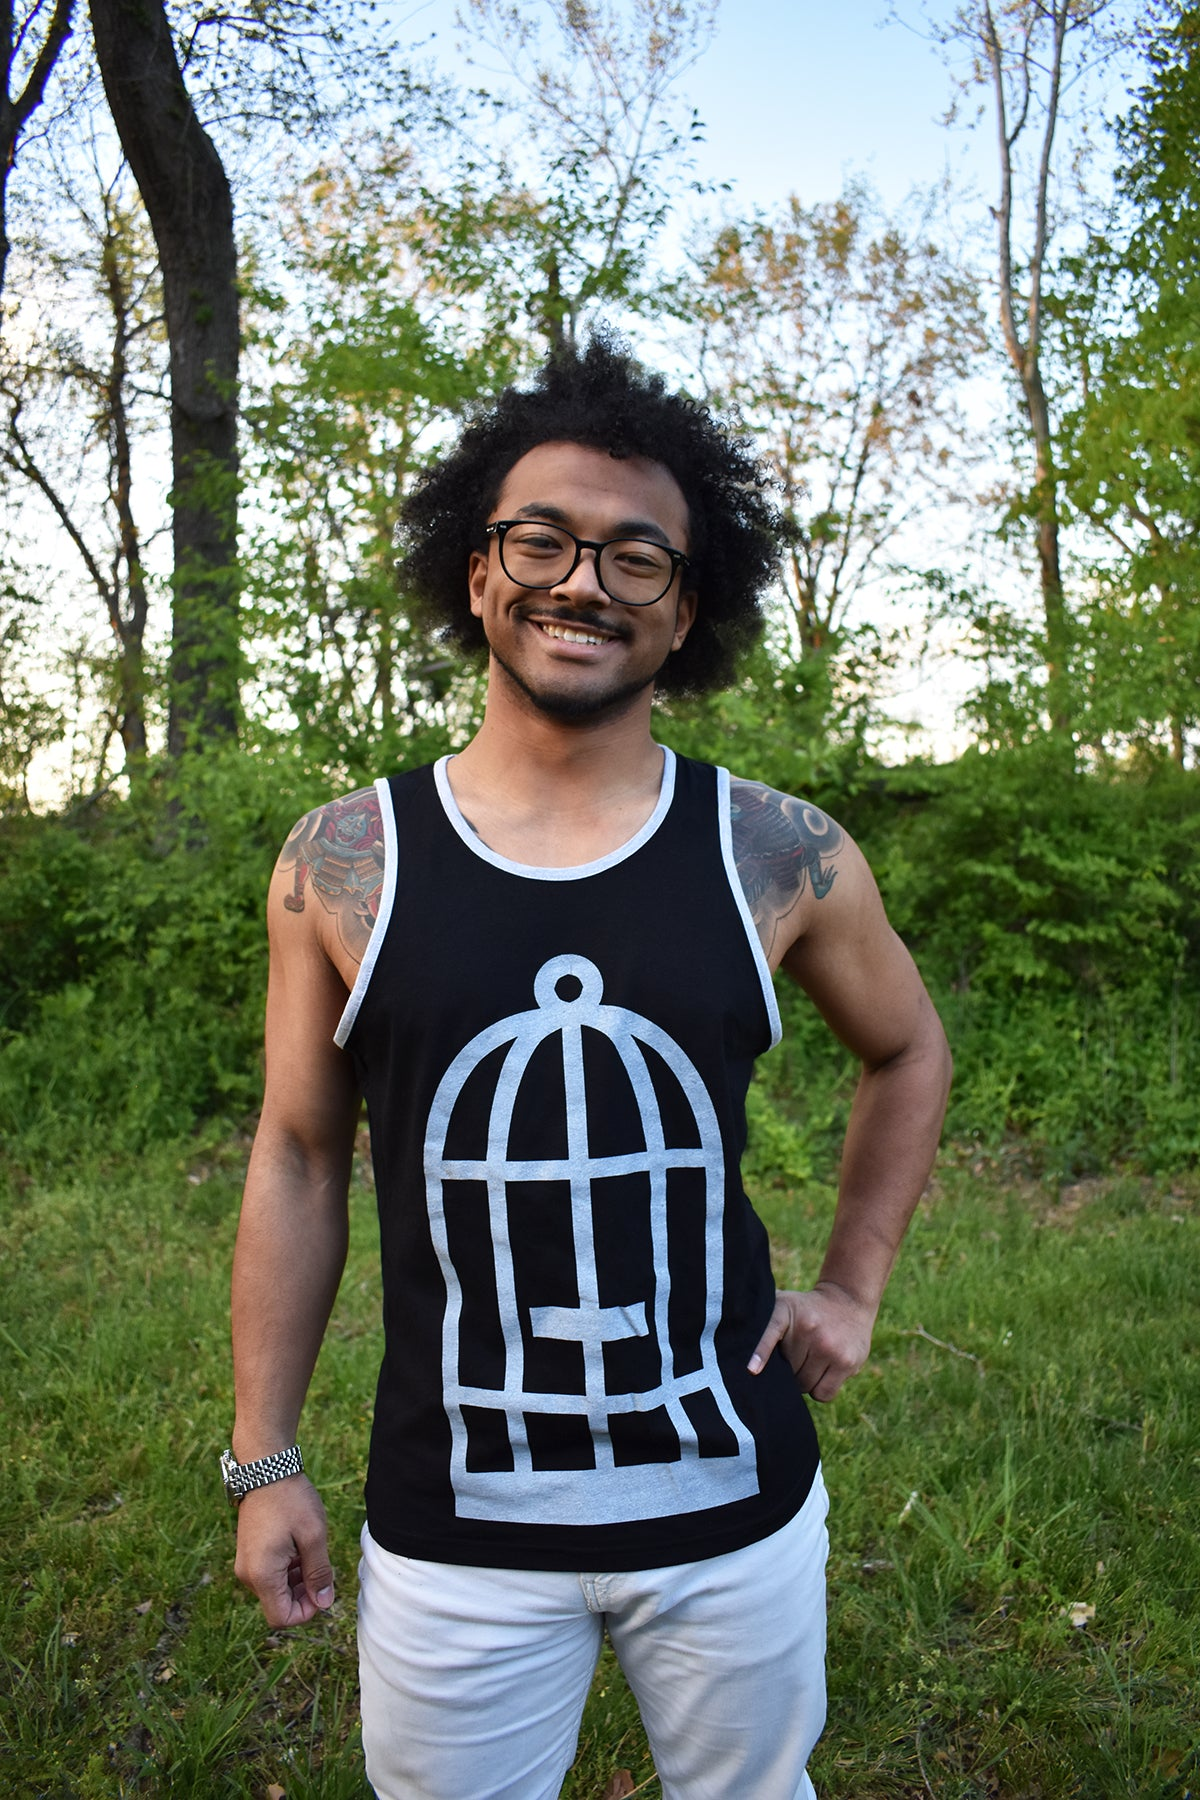 Male model wearing a black and grey ringer tank top with the No Egret's birdcage logo in grey on the front.